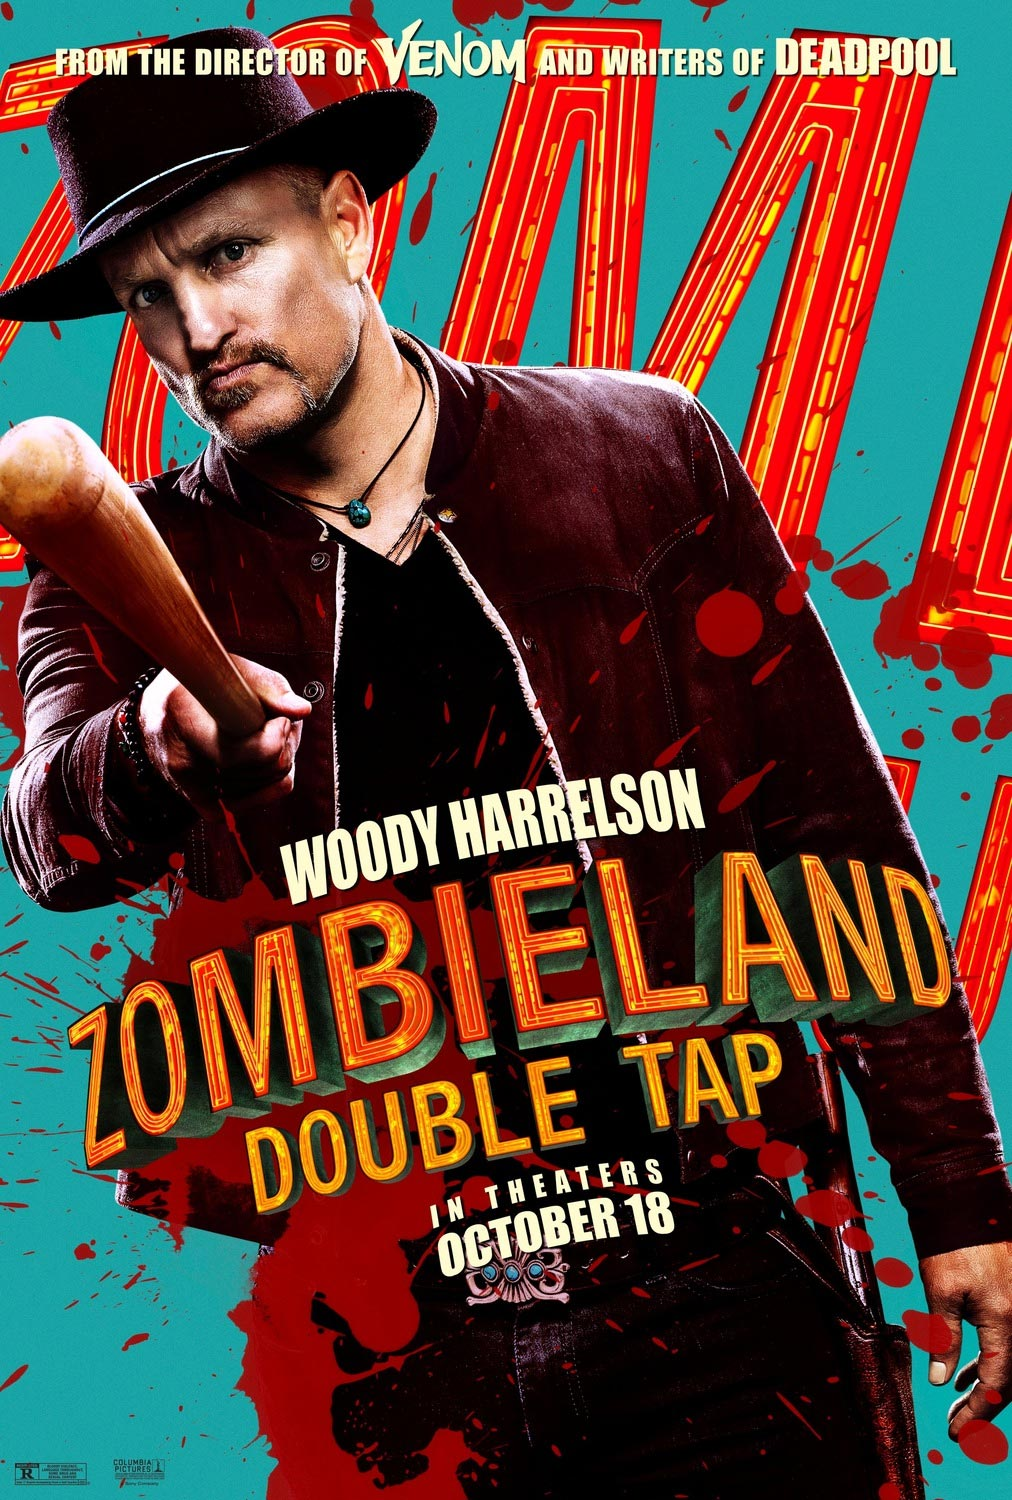 Woody Harrelson Zombieland: Double Tap Poster